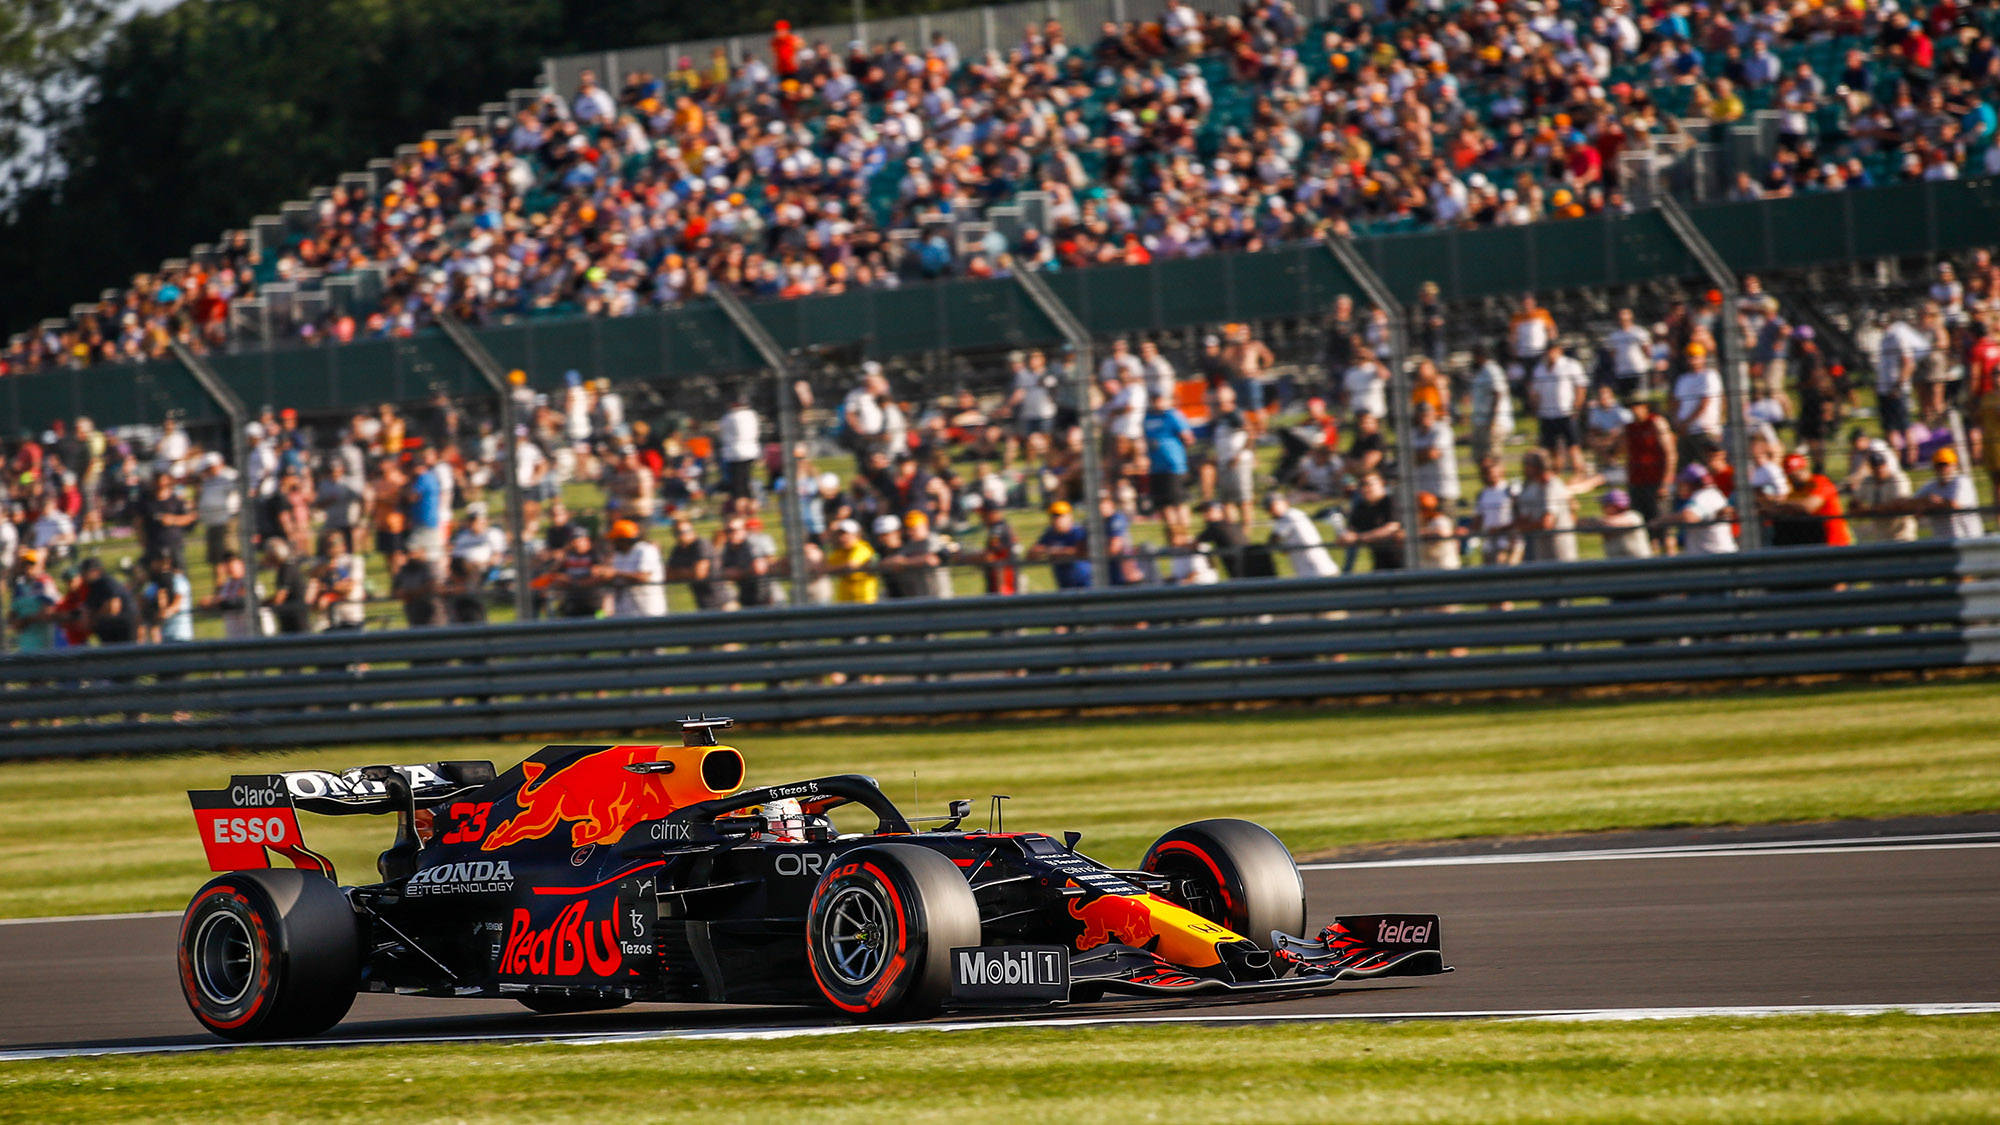 33 VERSTAPPEN Max (nld), Red Bull Racing Honda RB16B, action during the Formula 1 Pirelli British Grand Prix 2021, 10th round of the 2021 FIA Formula One World Championship from July 16 to 18, 2021 on the Silverstone Circuit, in Silverstone, United Kingdom - Photo Xavi Bonilla / DPPI